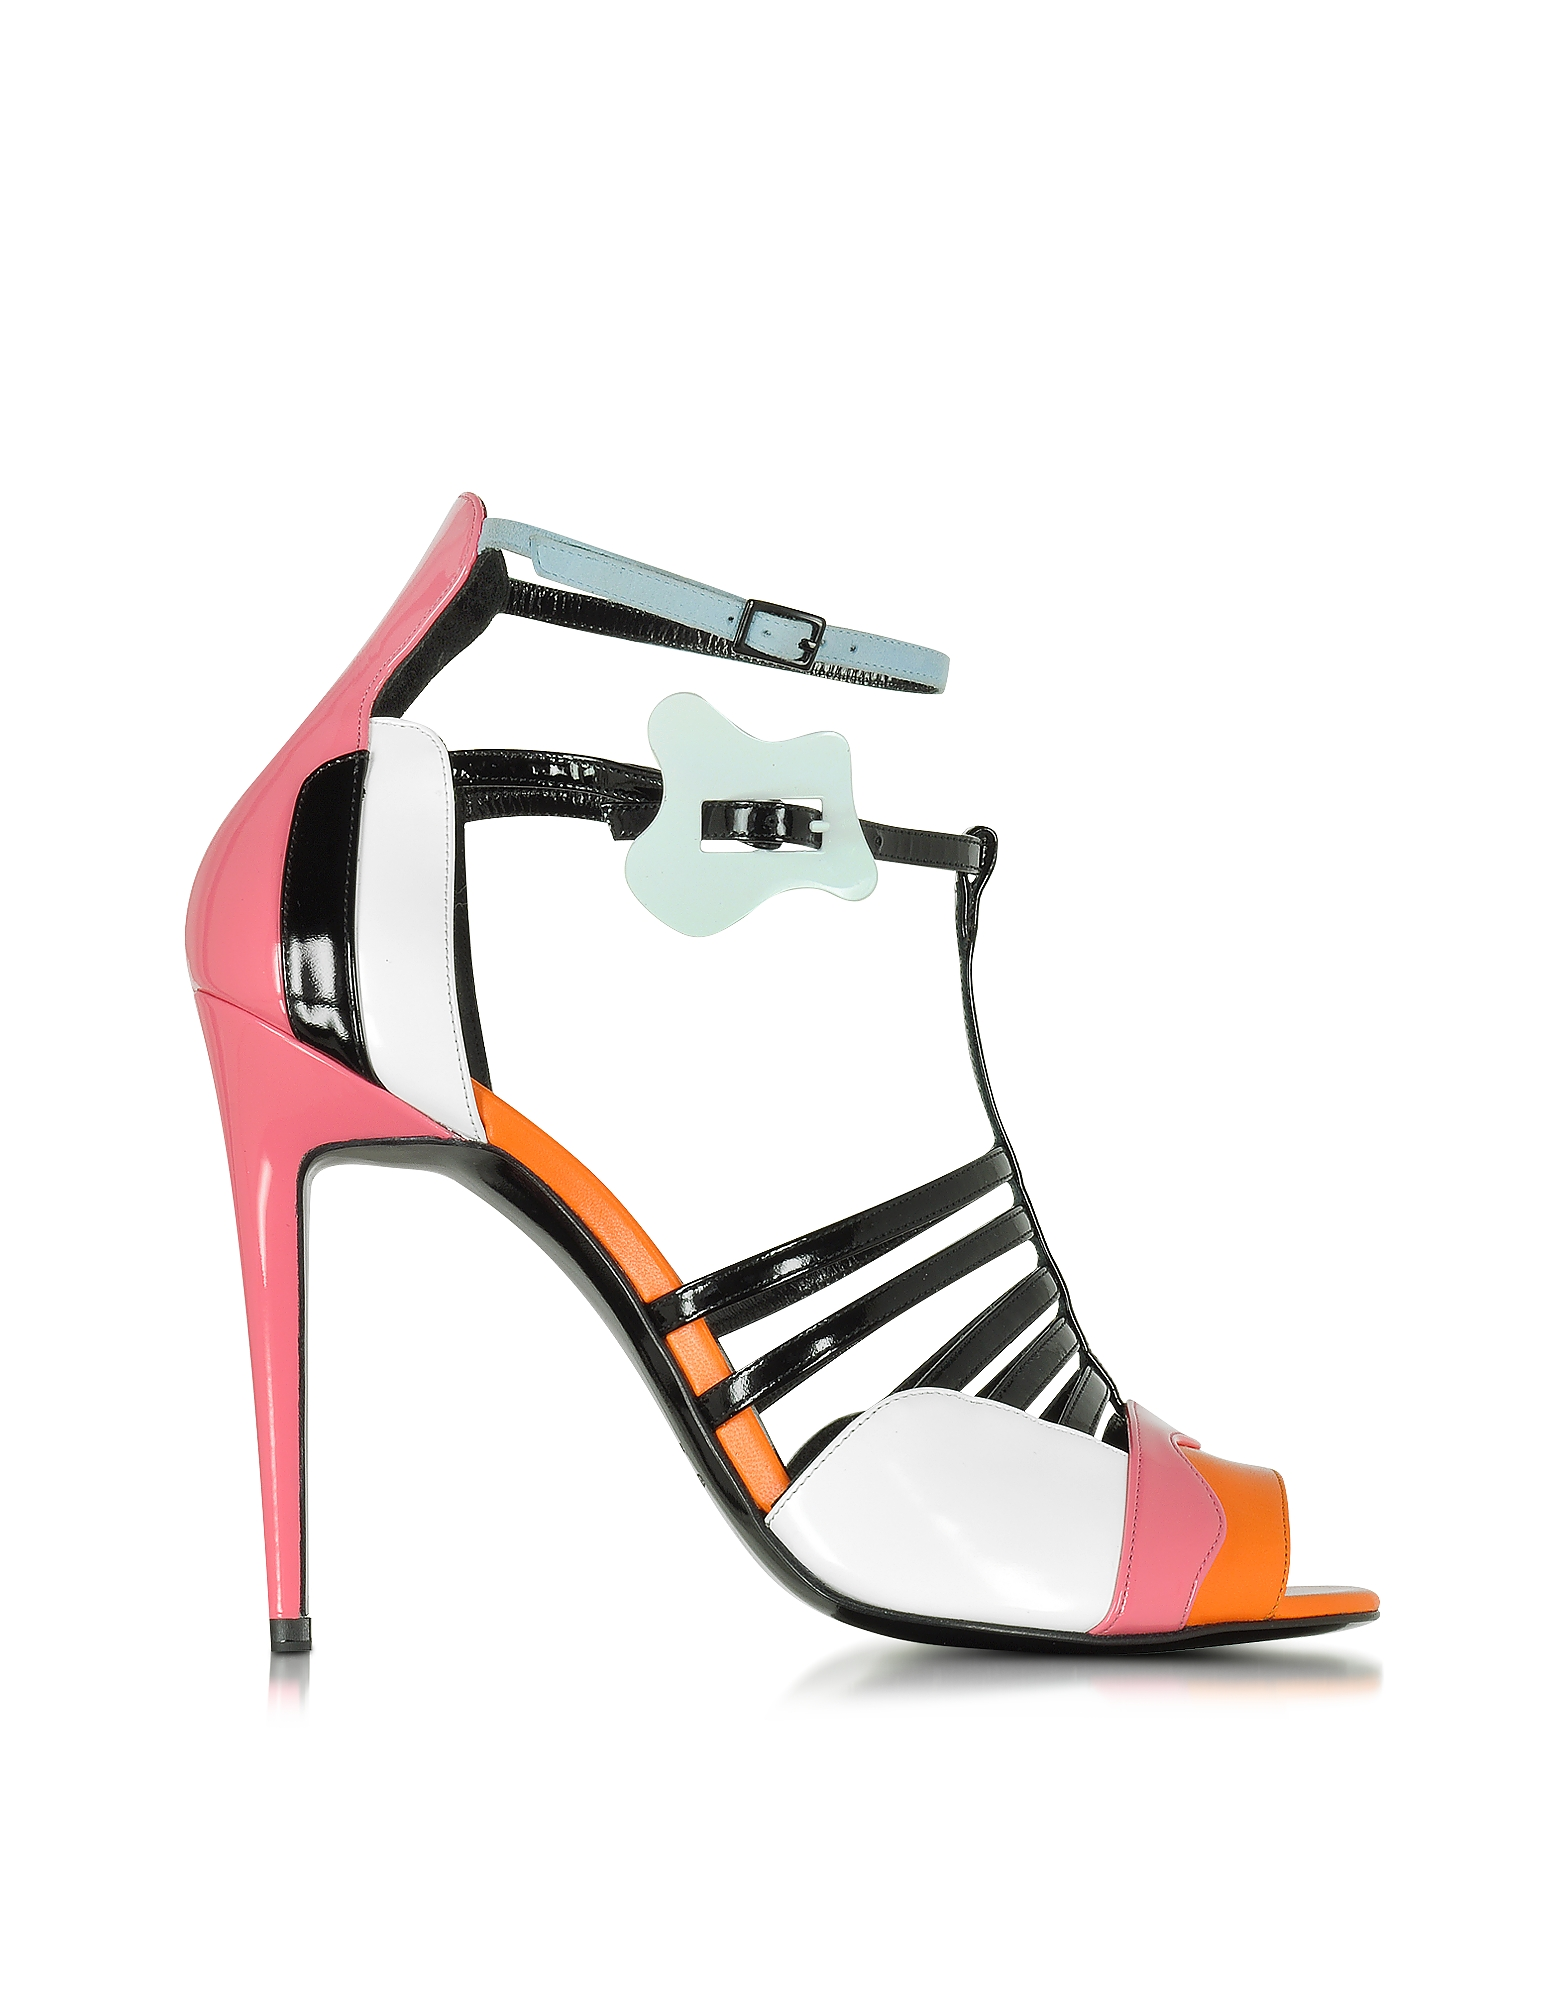 Pierre Hardy Shoes, Patent Leather and Kid Pink Alchimia High Heeled Sandal